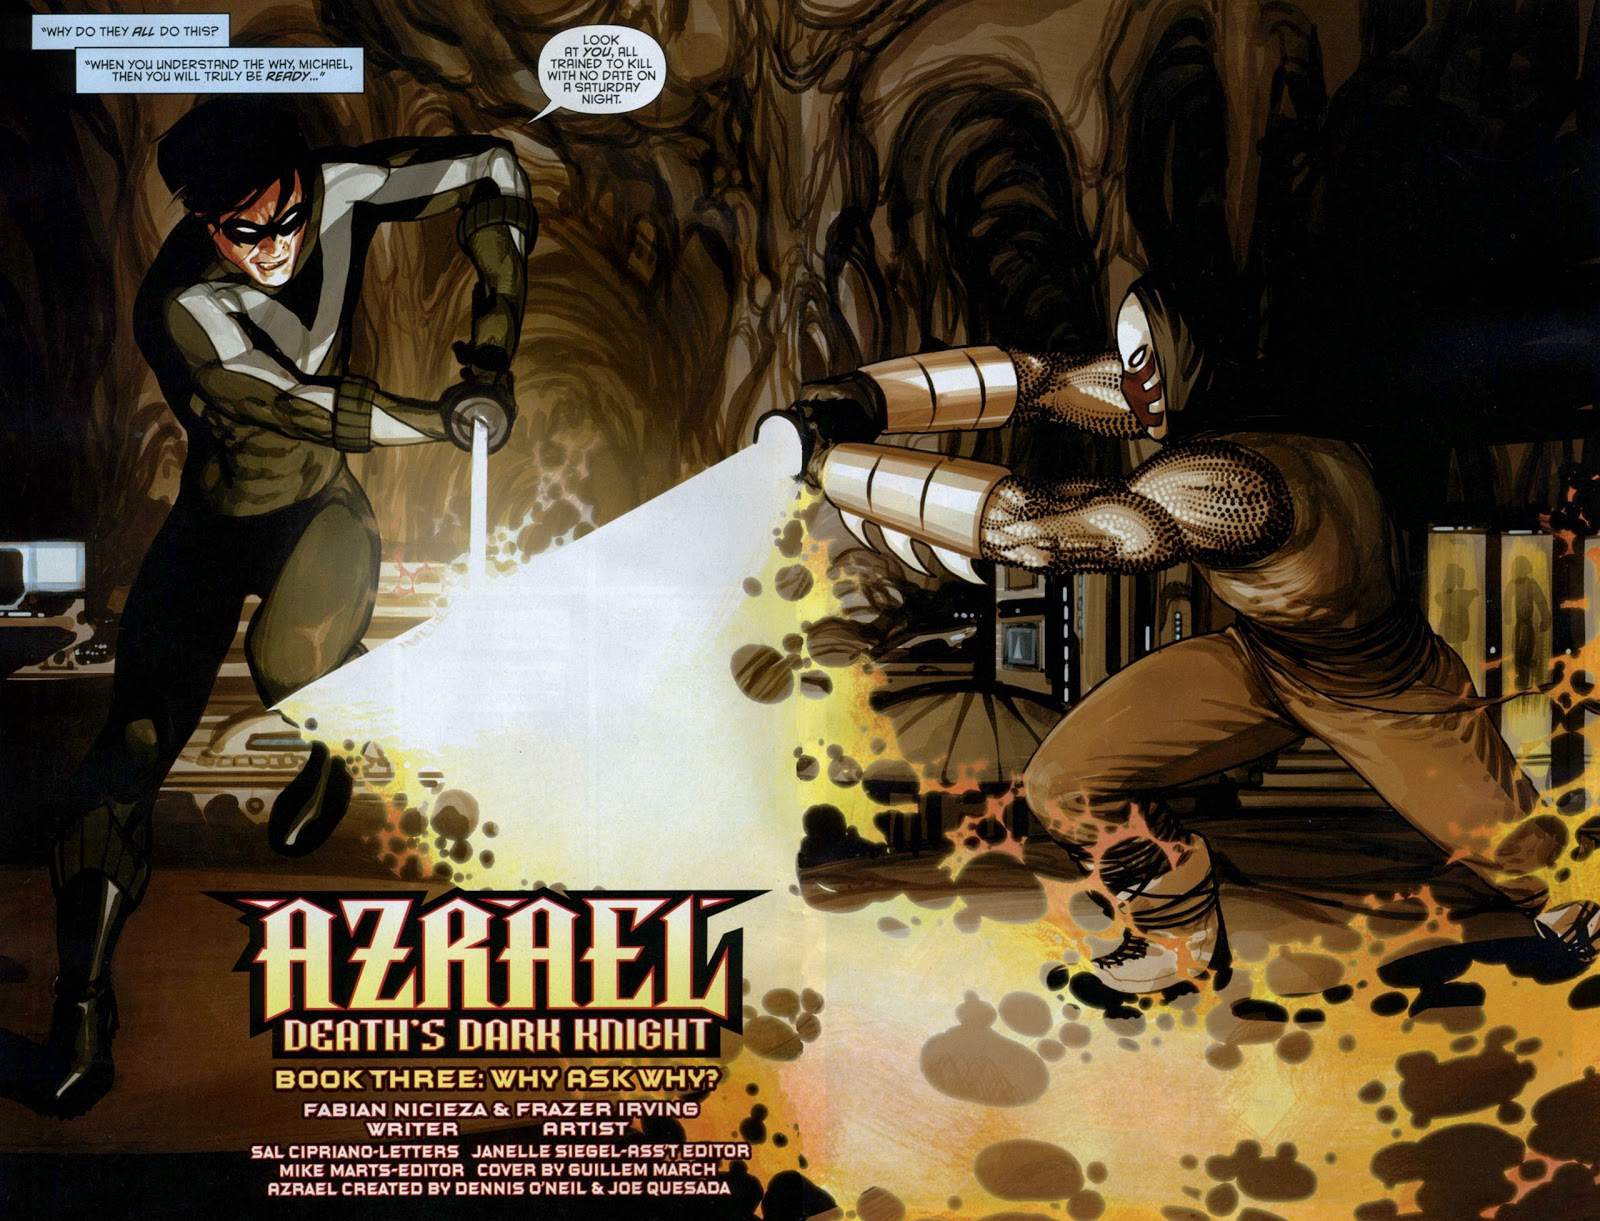 In 'Azrael: Death's Dark Knight', Nightwing fights Azrael who has the Sword Of Sin.